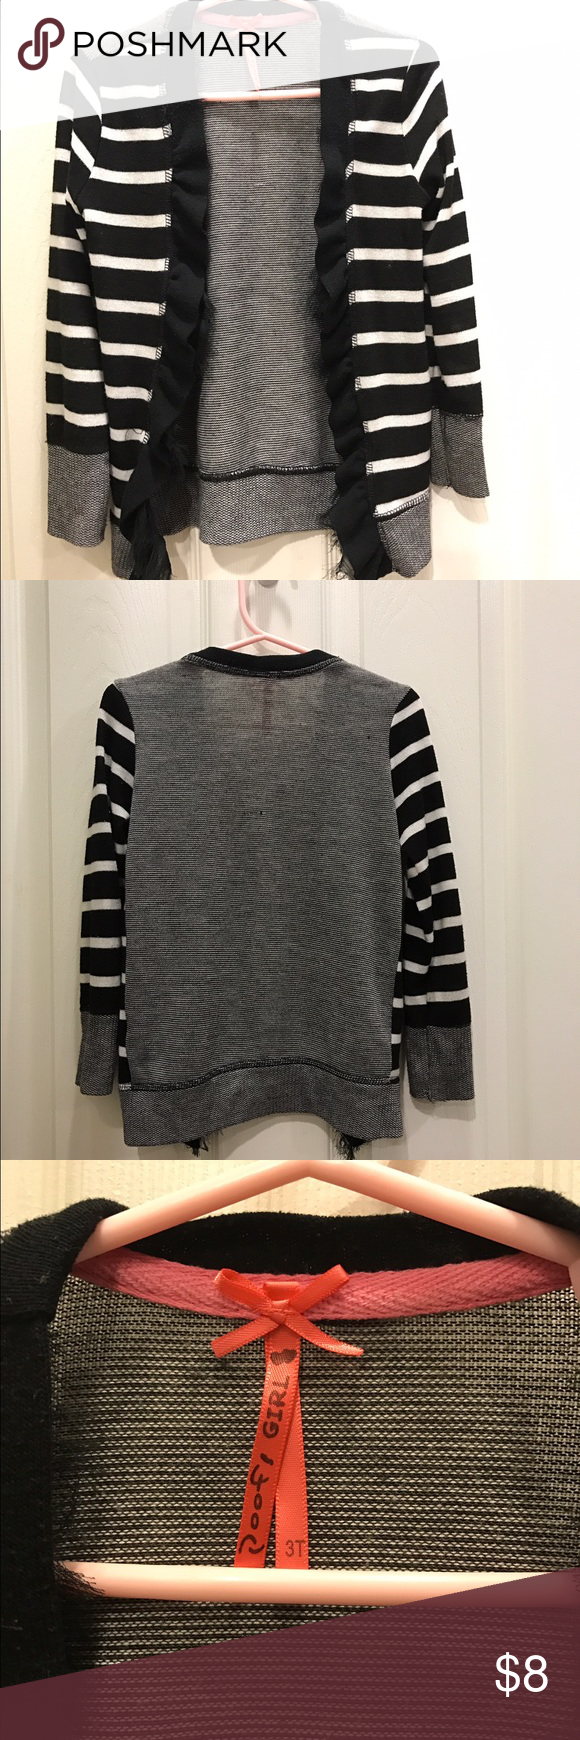 Children's cardigan Cute toddler girls black and white striped cardigan. Very well taken care of, smoke free home. Shirts & Tops Sweaters